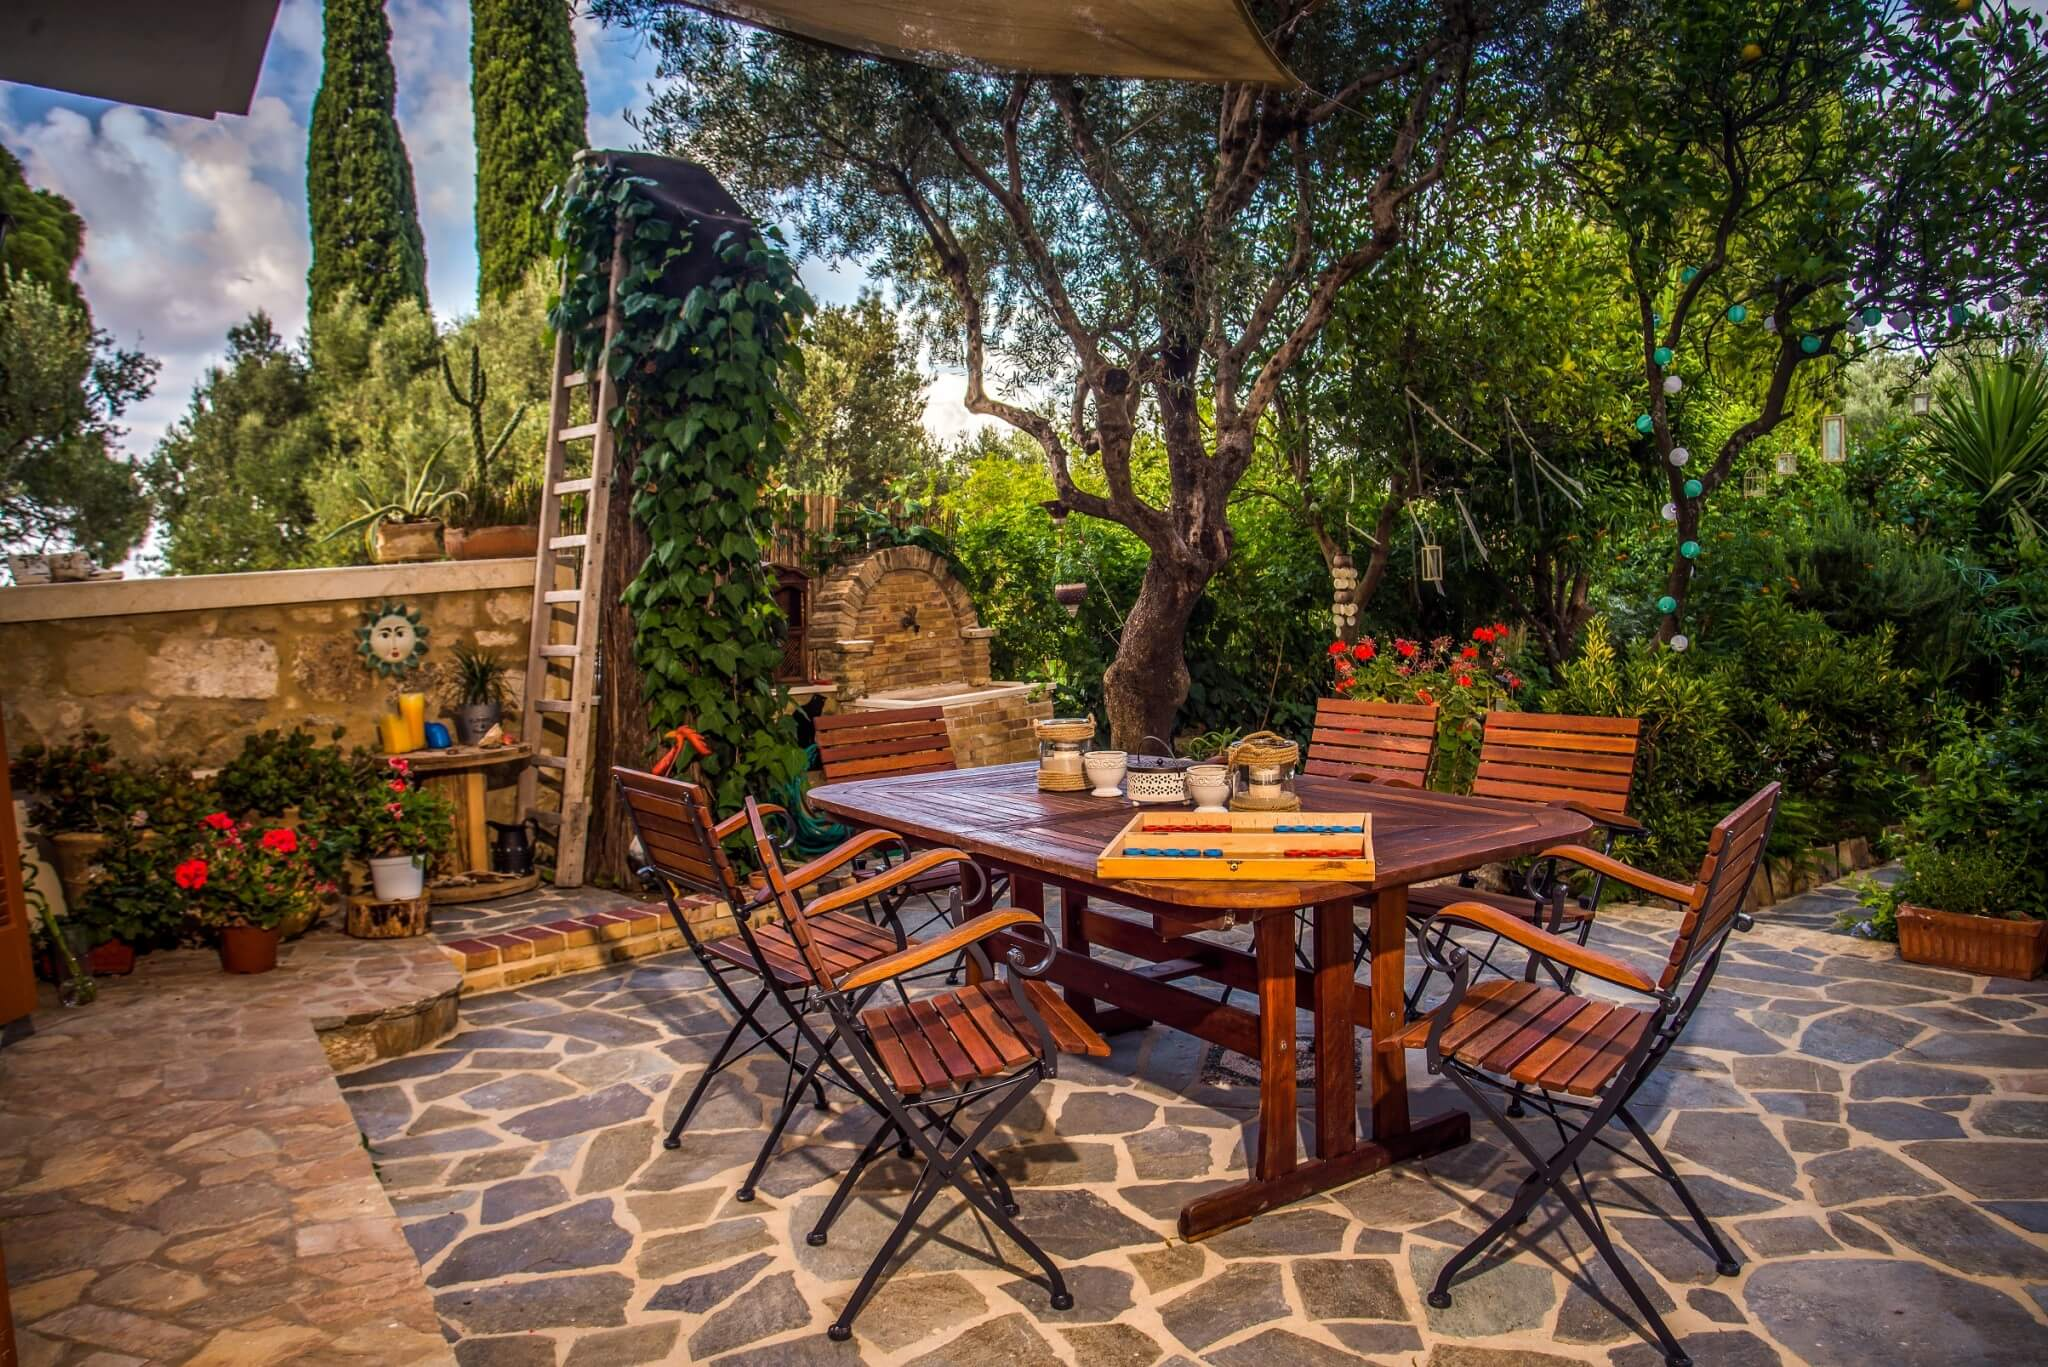 Private outdoor dining lounge area